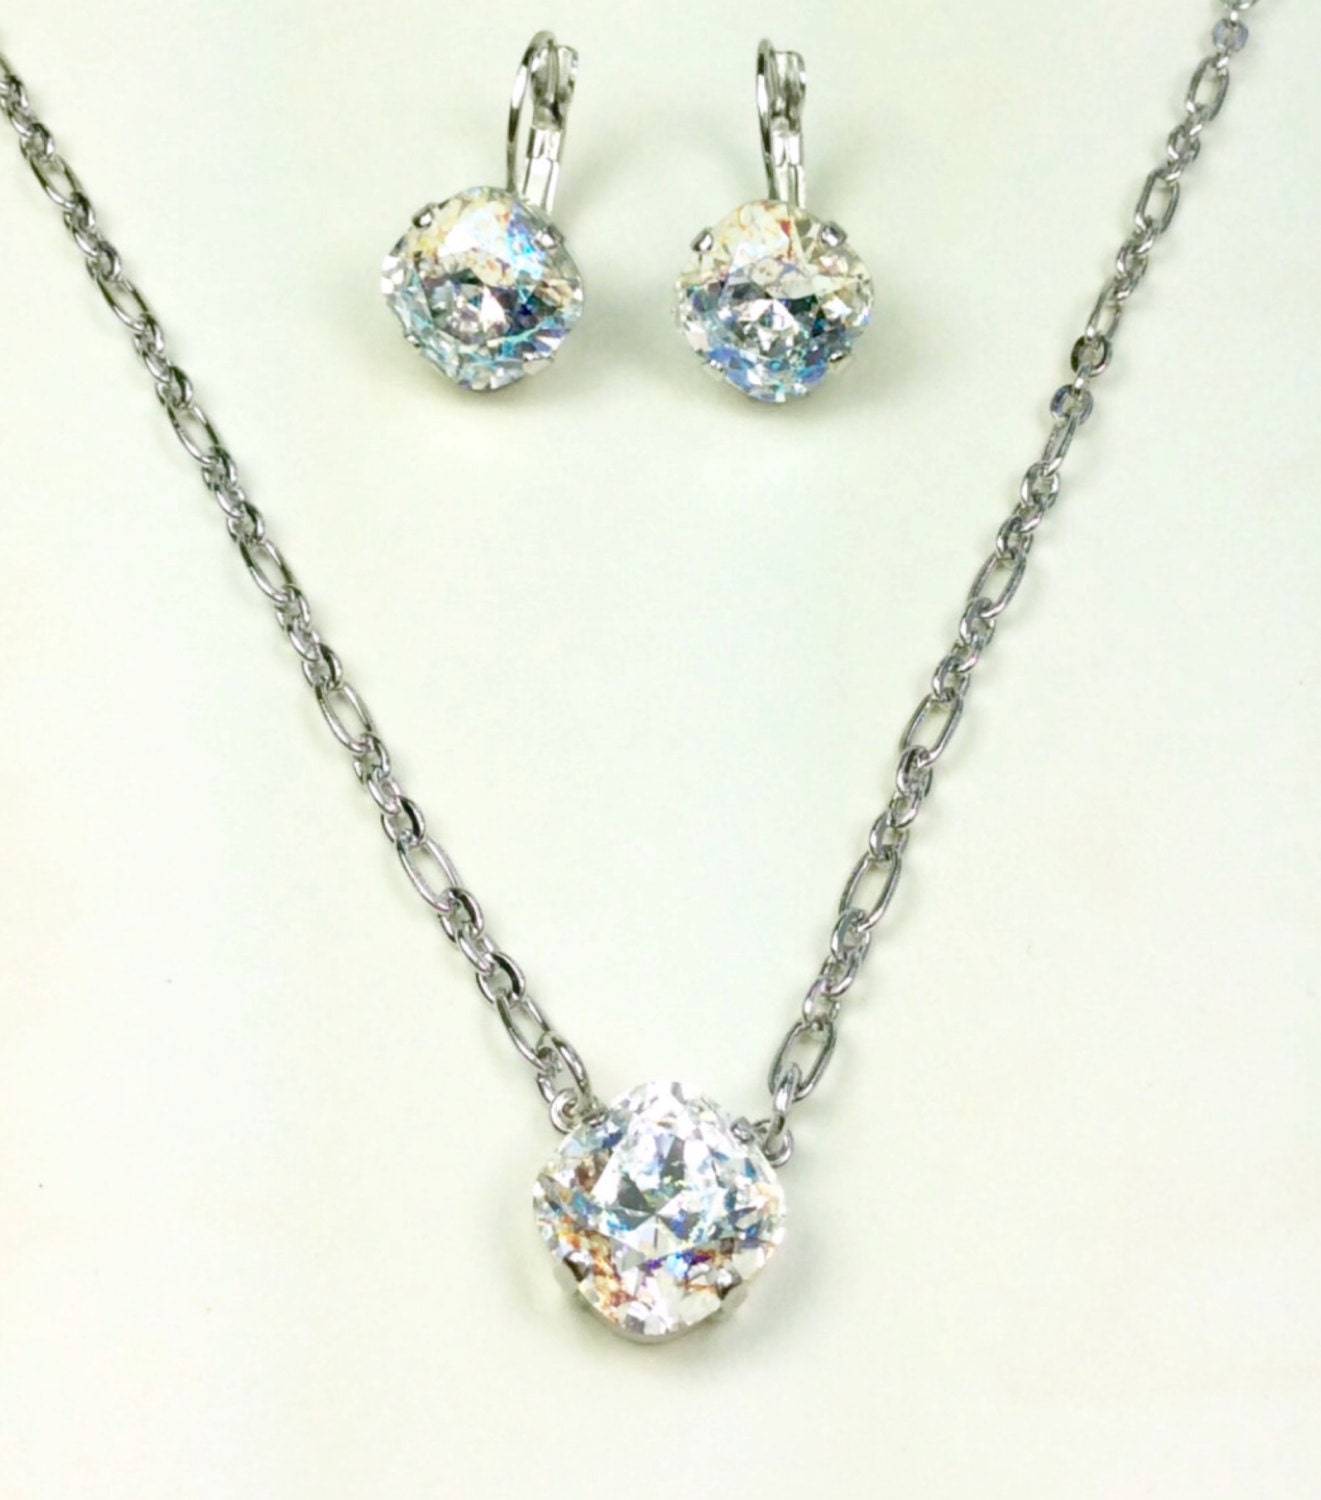 bissett pendants kate ny cushion necklaces products cut pendant cz garnet collections fashion